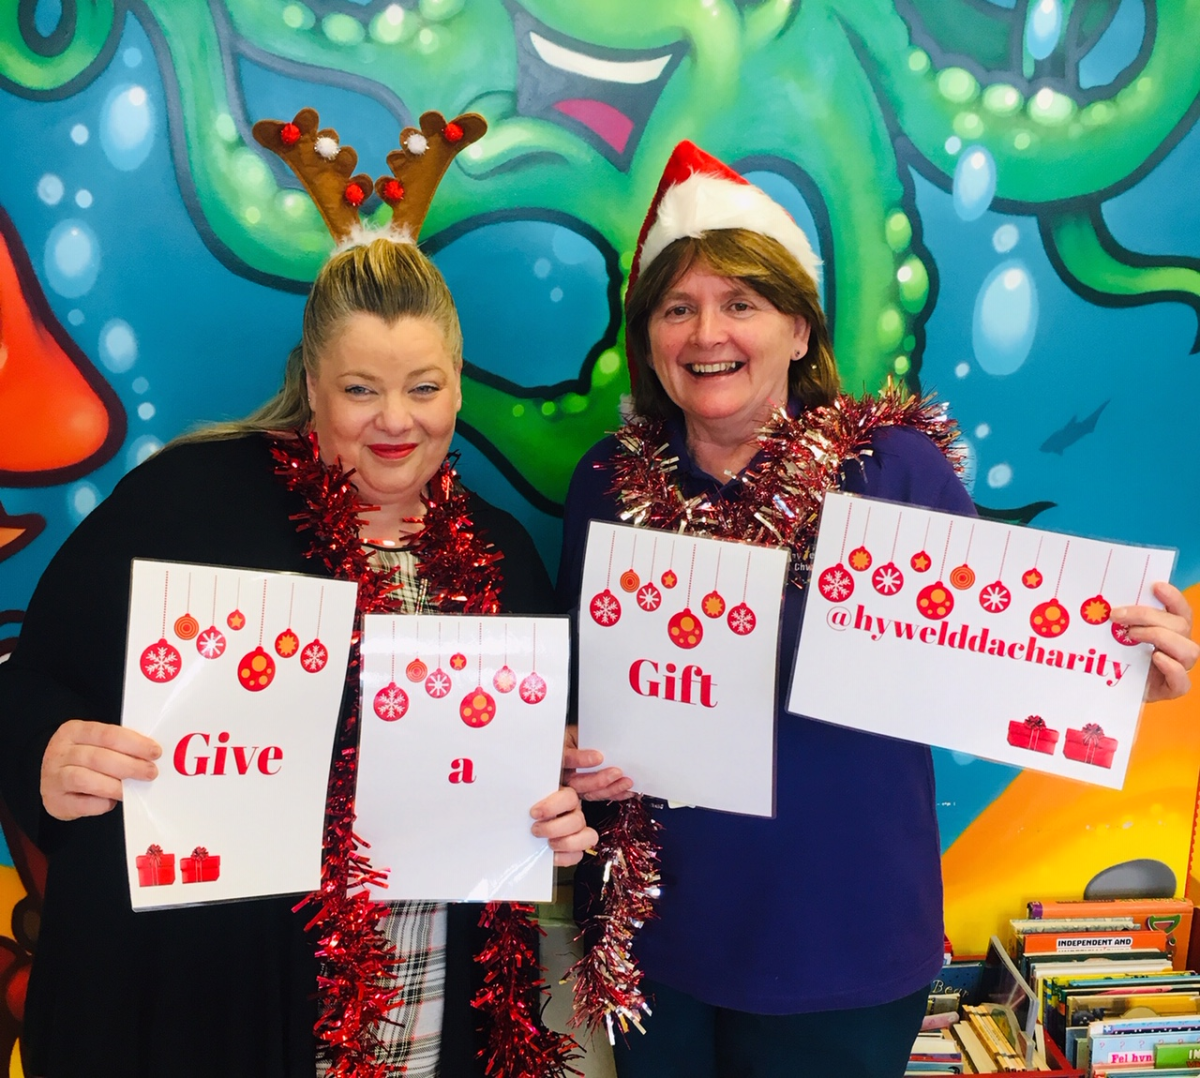 Christmas Gift Appeal: GIVE A GIFT CHRISTMAS APPEAL